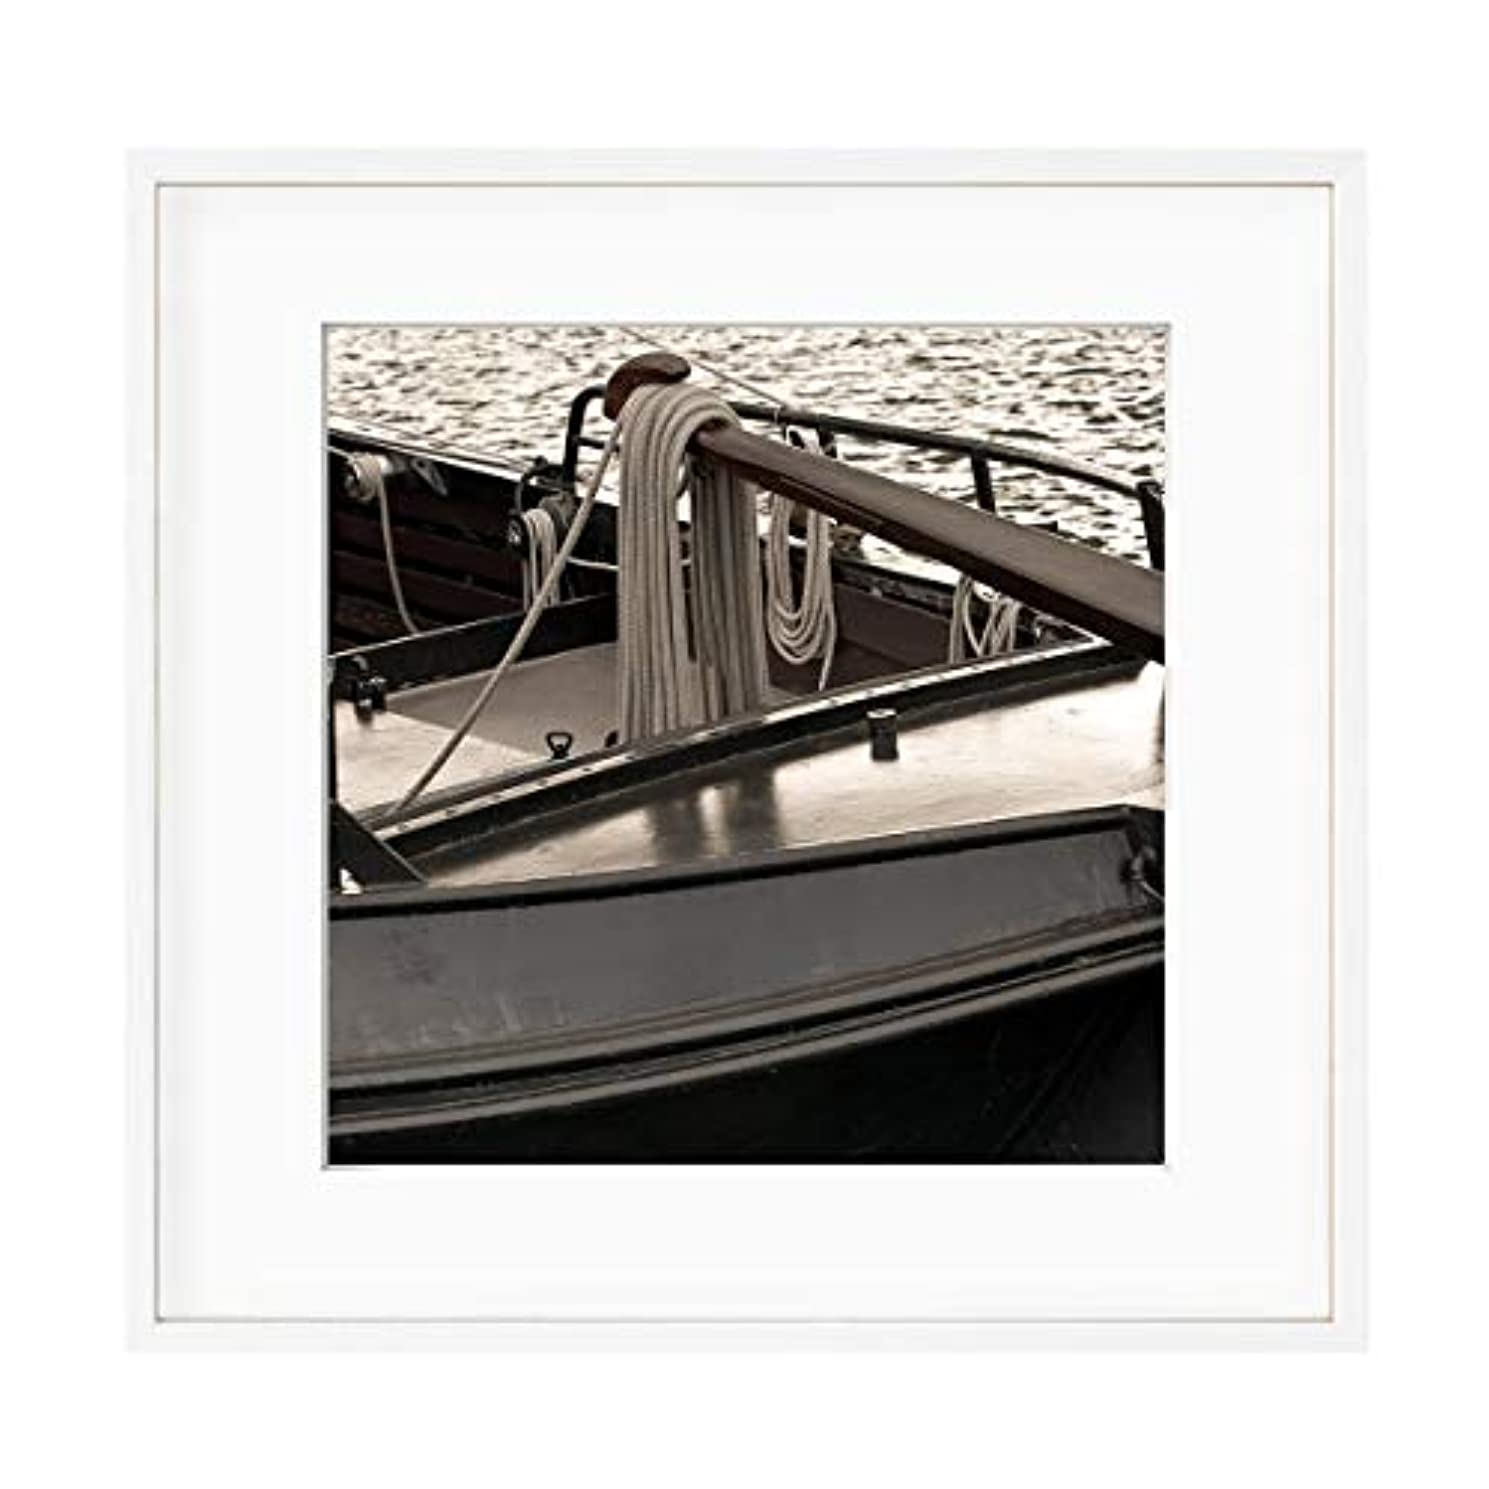 Dutch Boat, Aluminium Frame, with Mount, Multicolored, 50x50